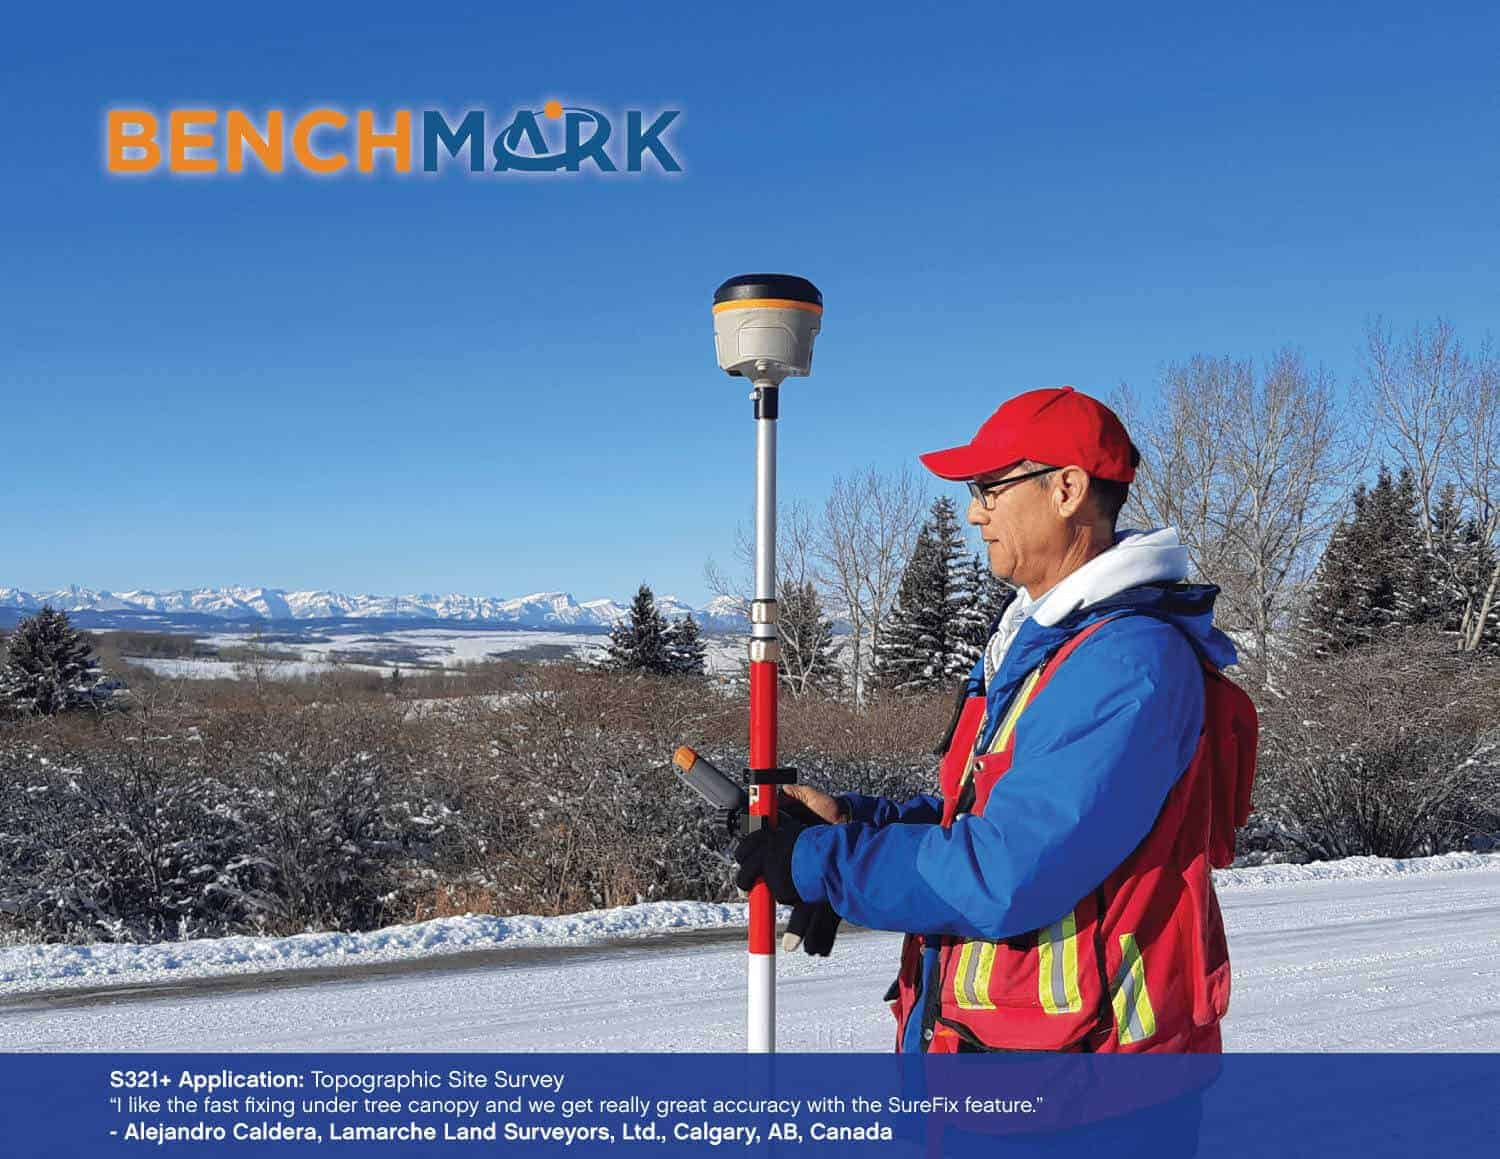 Bench Mark US - Surveying equipment - topographic site survey